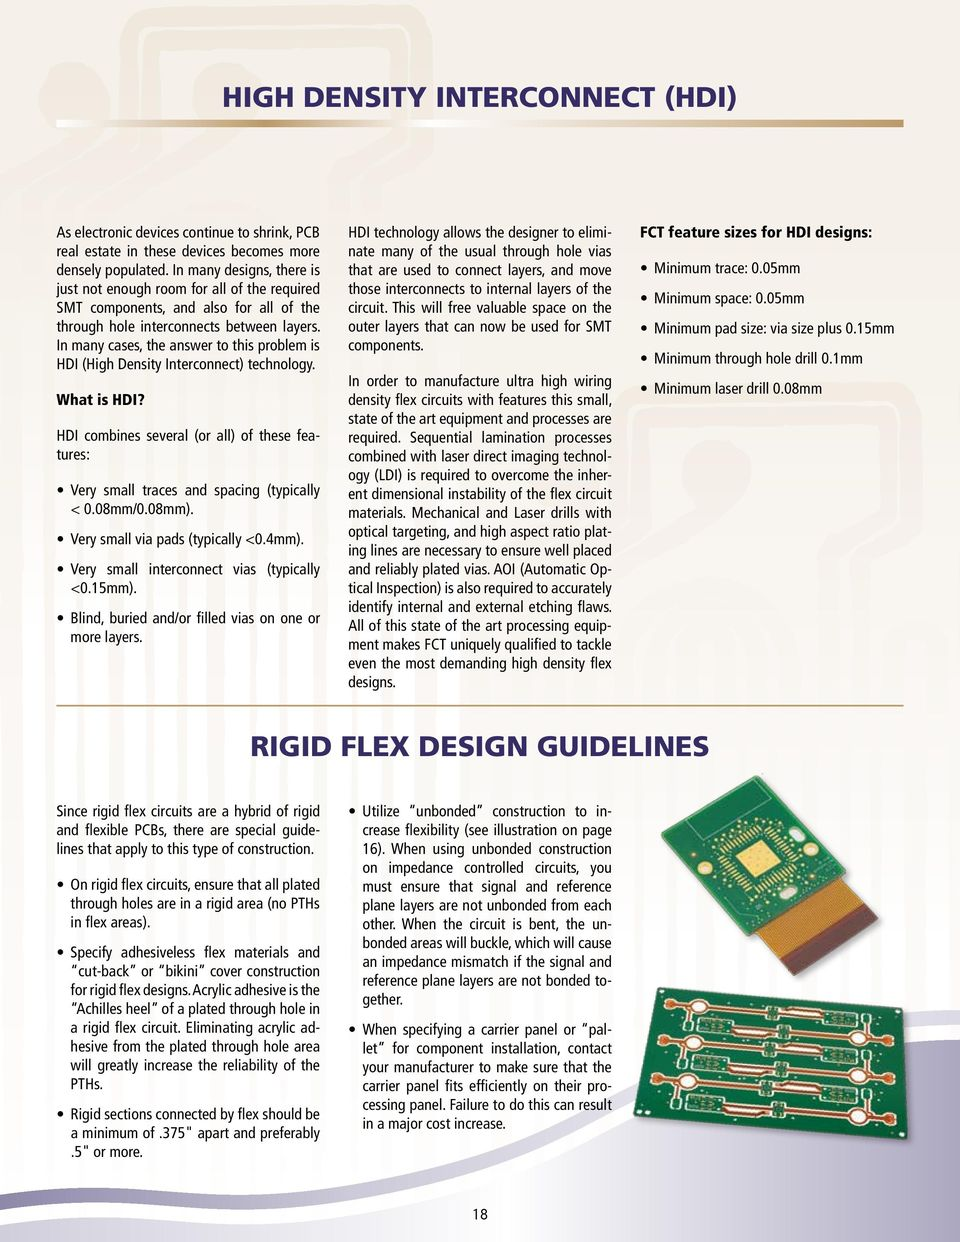 Flexible Circuit And Heater Design Guide Pdf Layer 1 Oz Pcb Printed Board Cover Film Supplier In Many Cases The Answer To This Problem Is Hdi High Density Interconnect